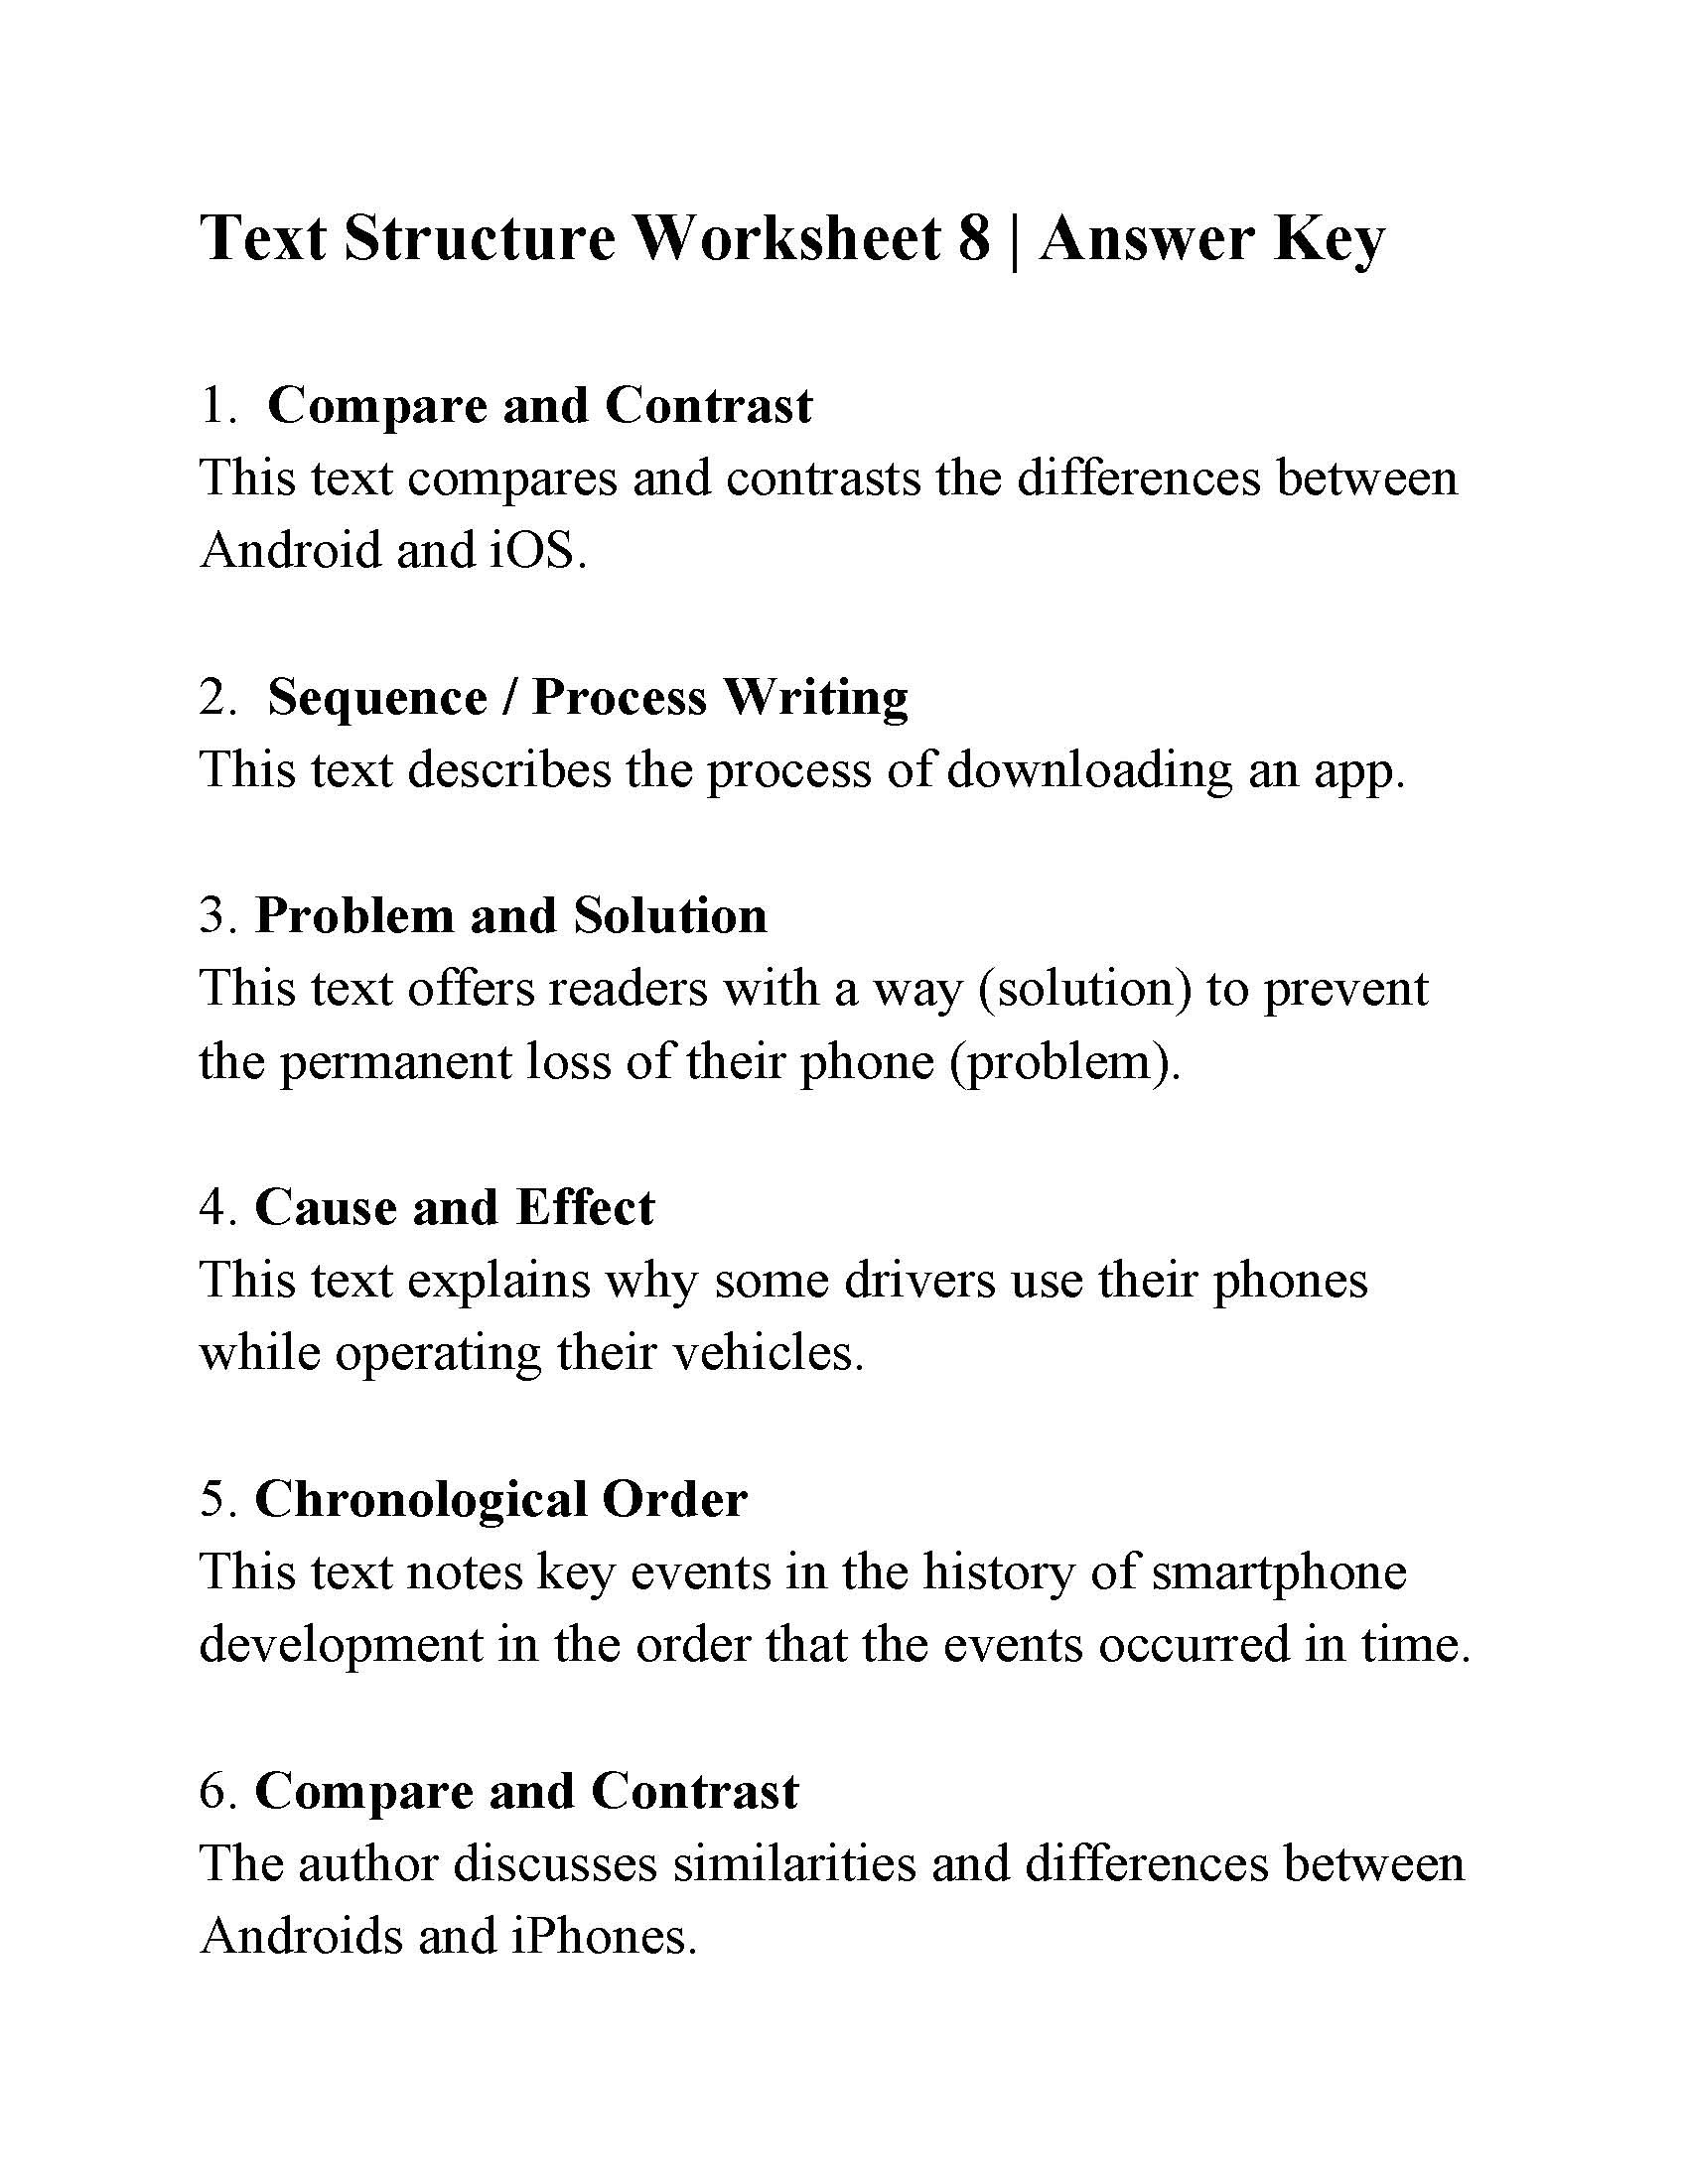 Text Structure 3rd Grade Worksheets Text Structure Worksheet Answers Ereading Worksheets Year